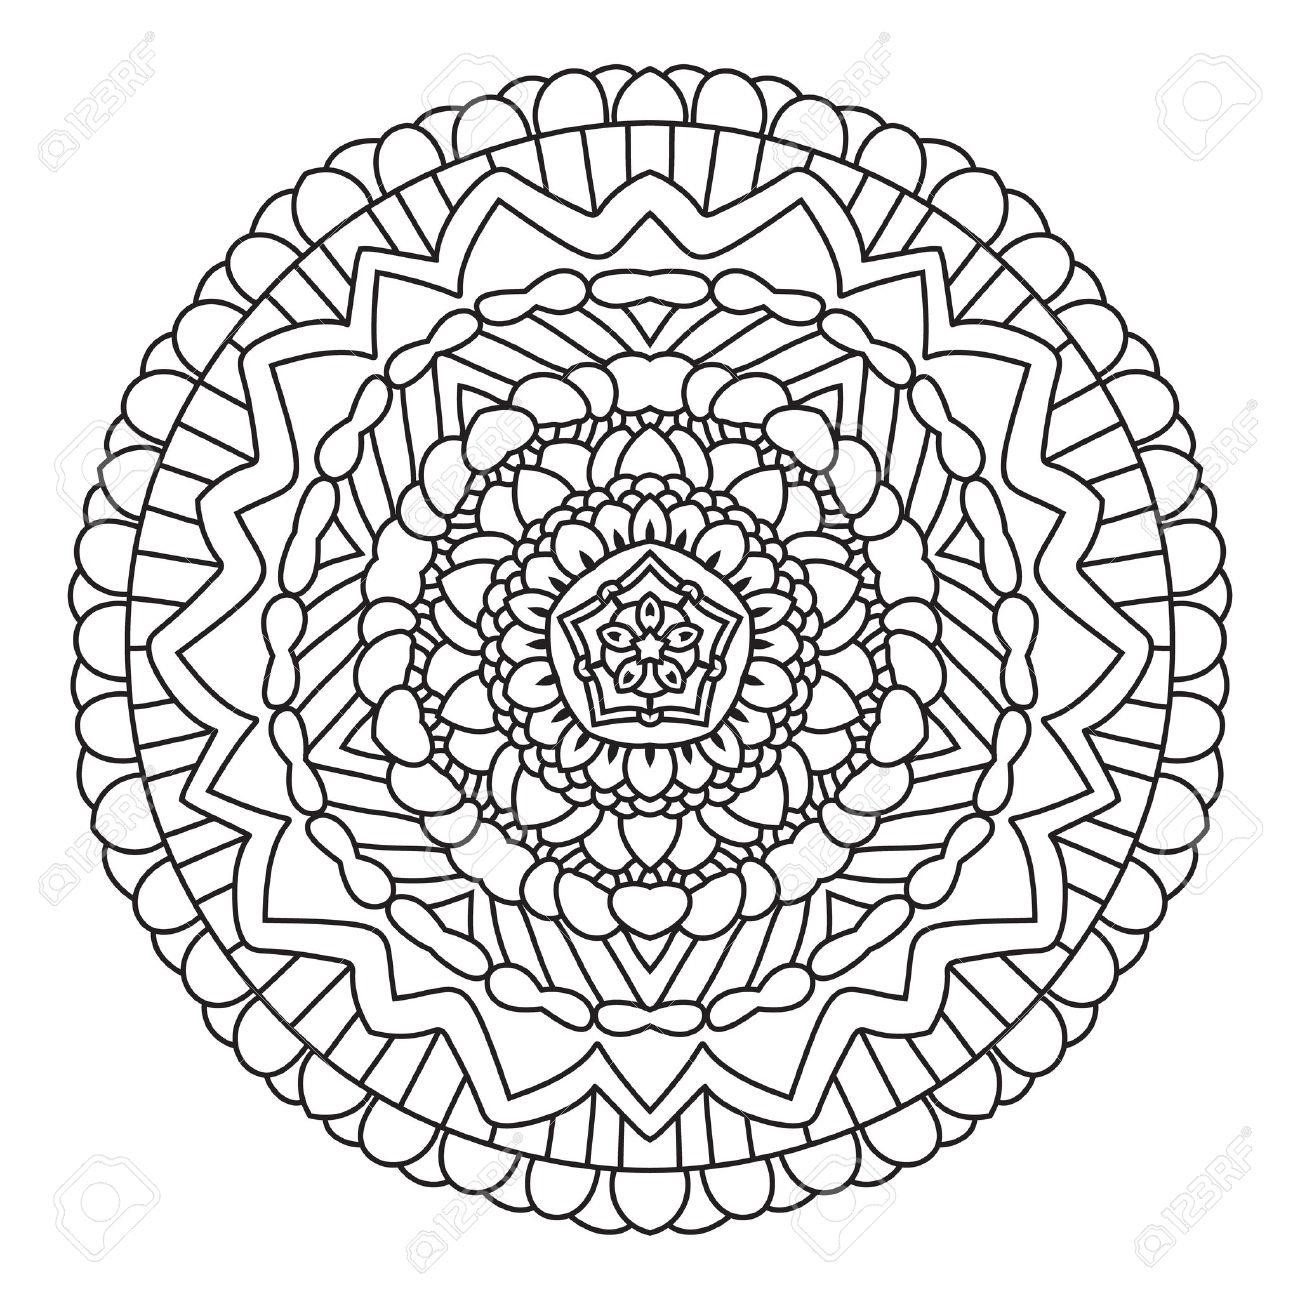 44342145-Circular-Symmetric-Ethnic-Pattern-Mandala-Coloring-İsolated-Stock-Photo